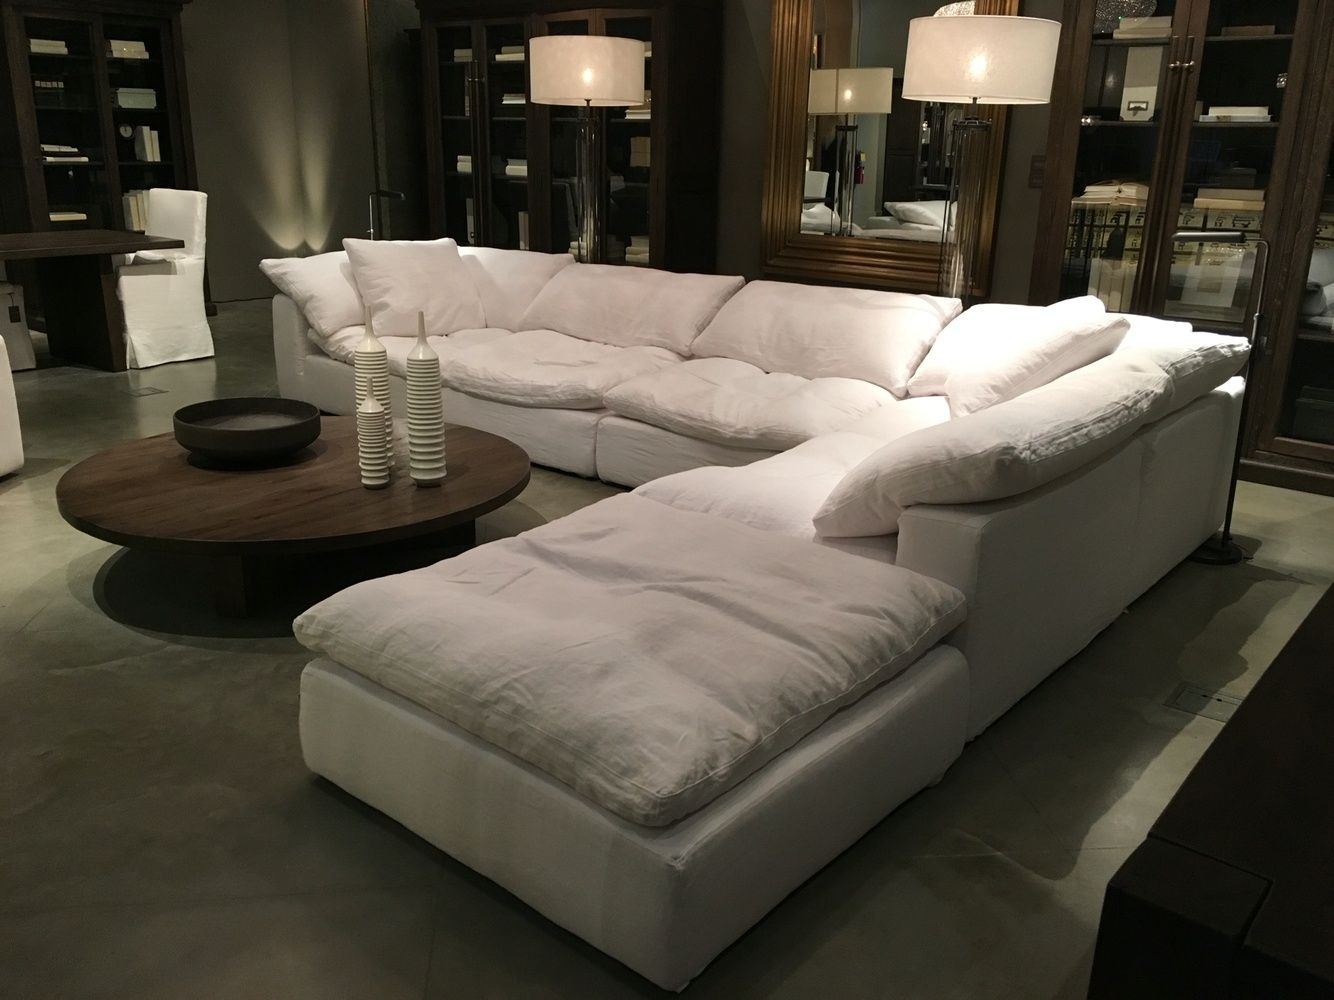 Deep fy Couch Home Design